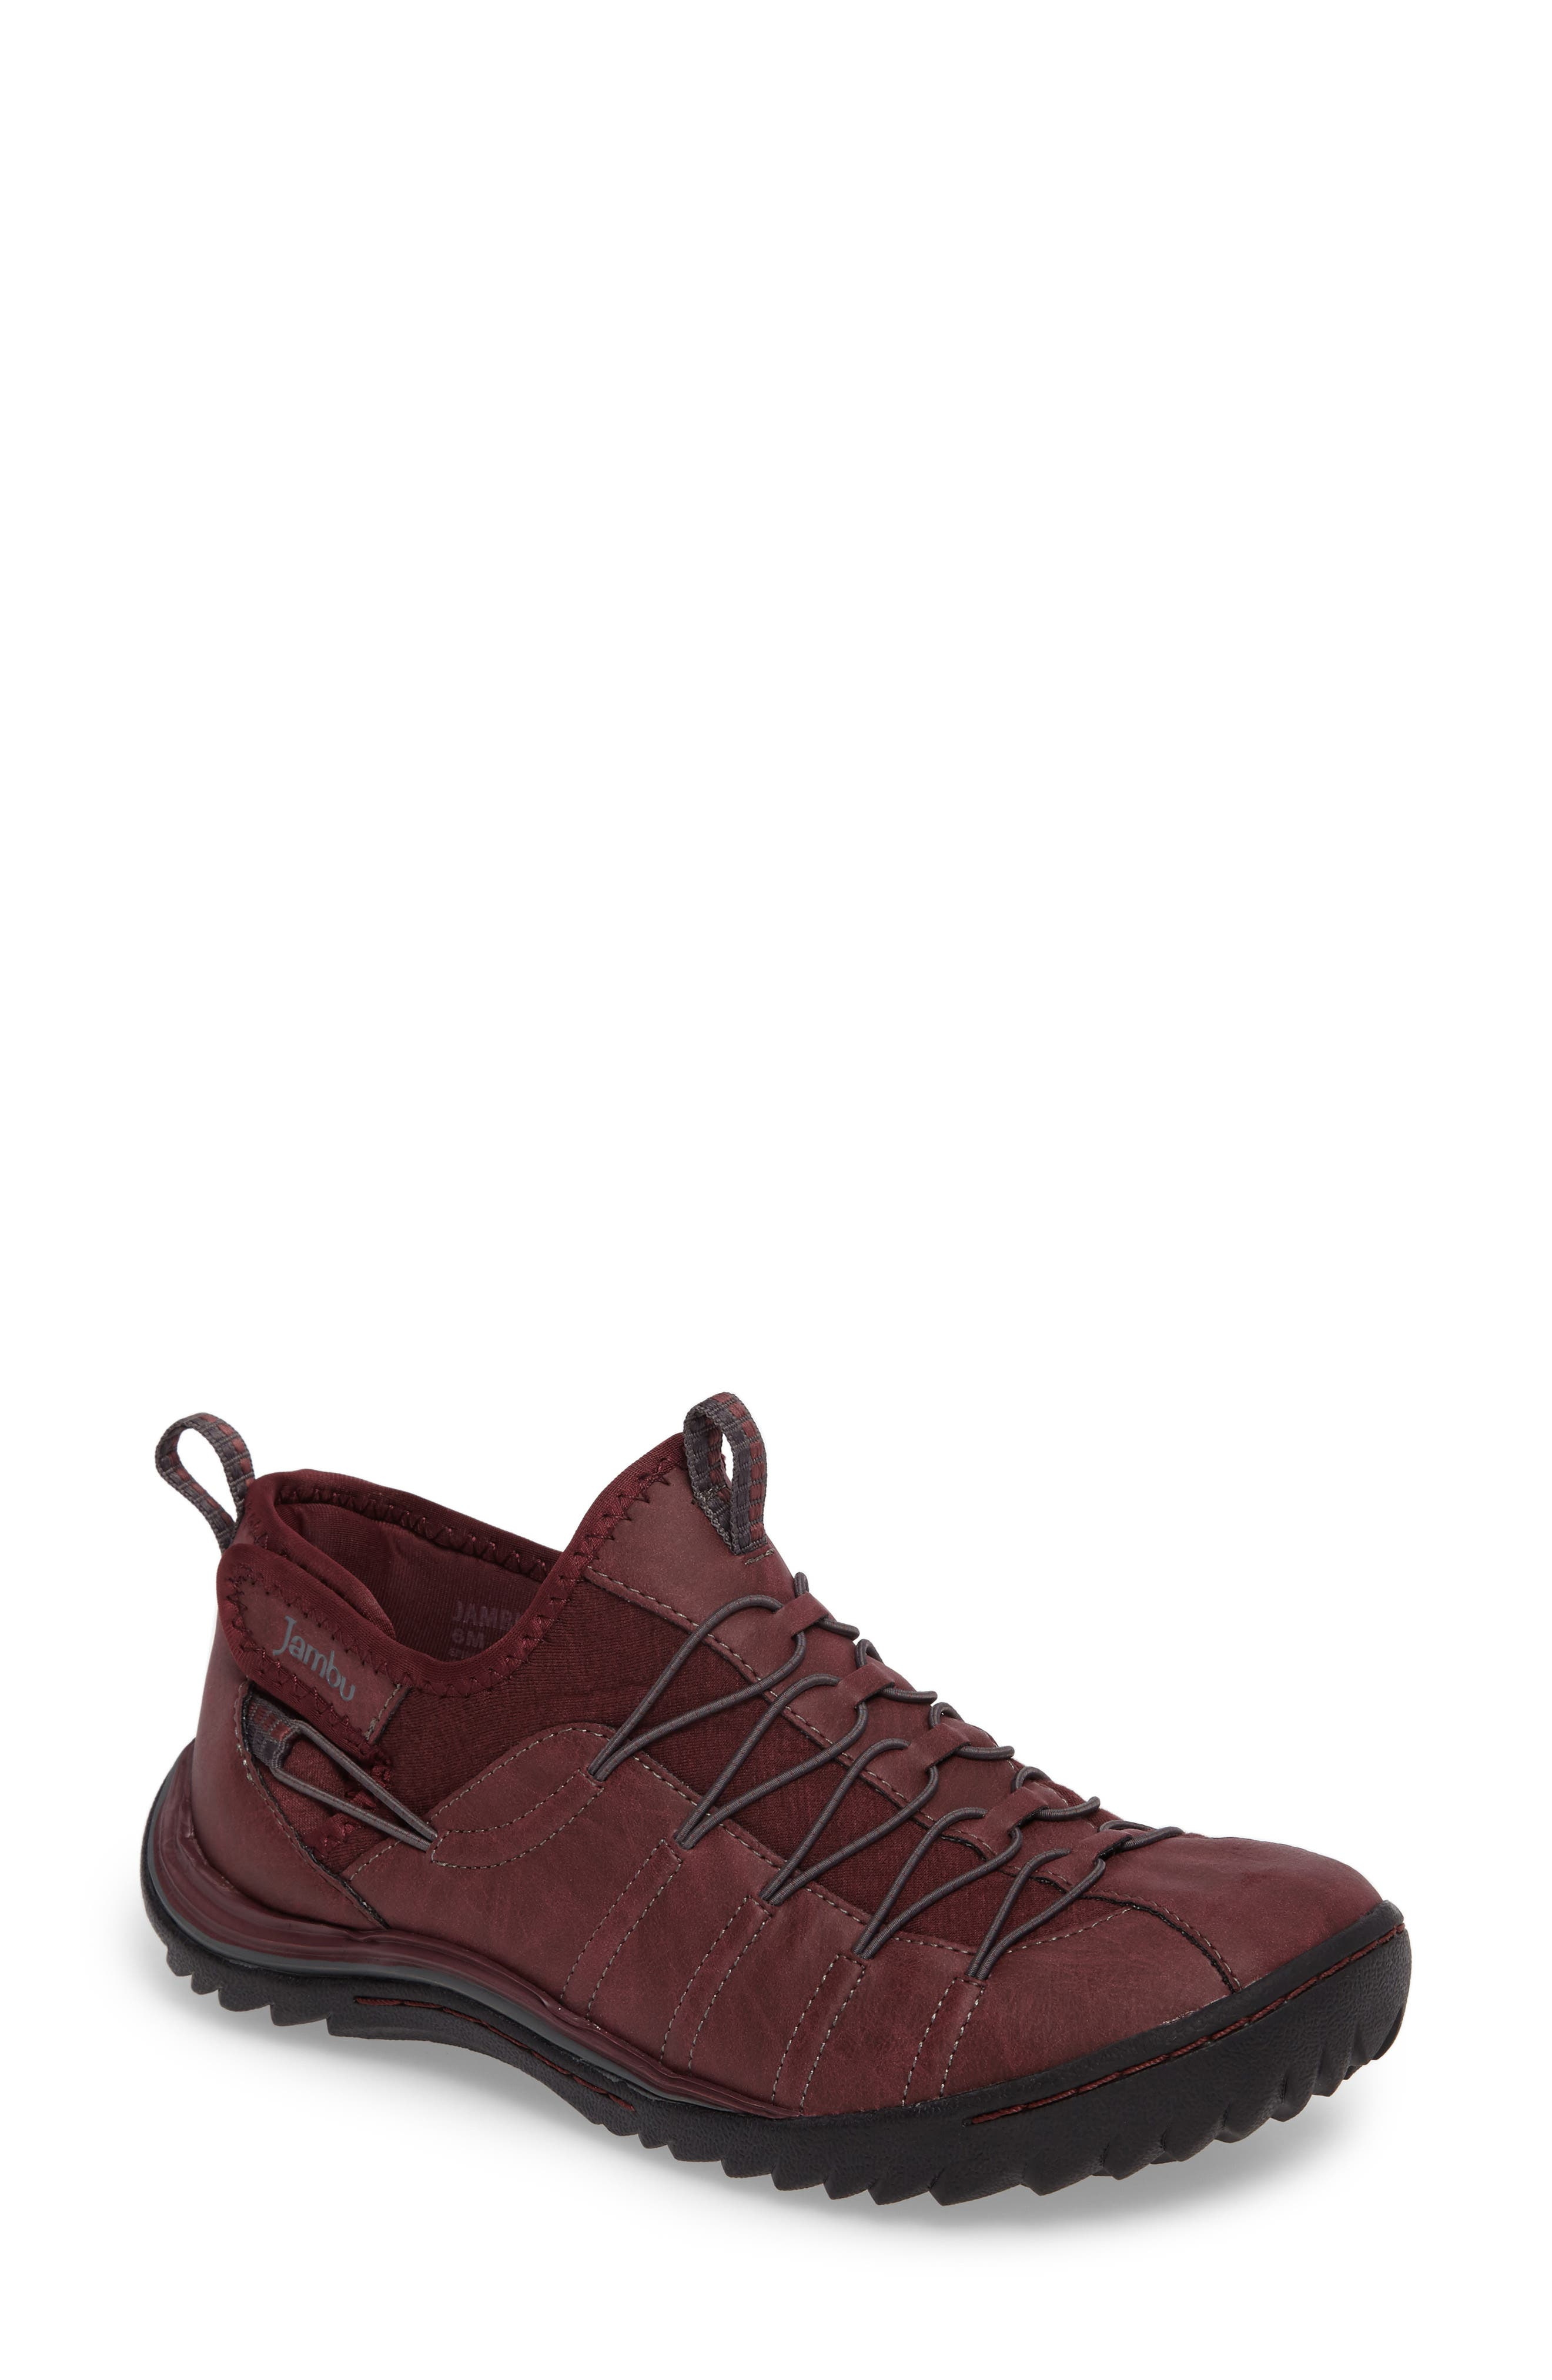 Alternate Image 1 Selected - Jambu Spirit Sneaker (Women)